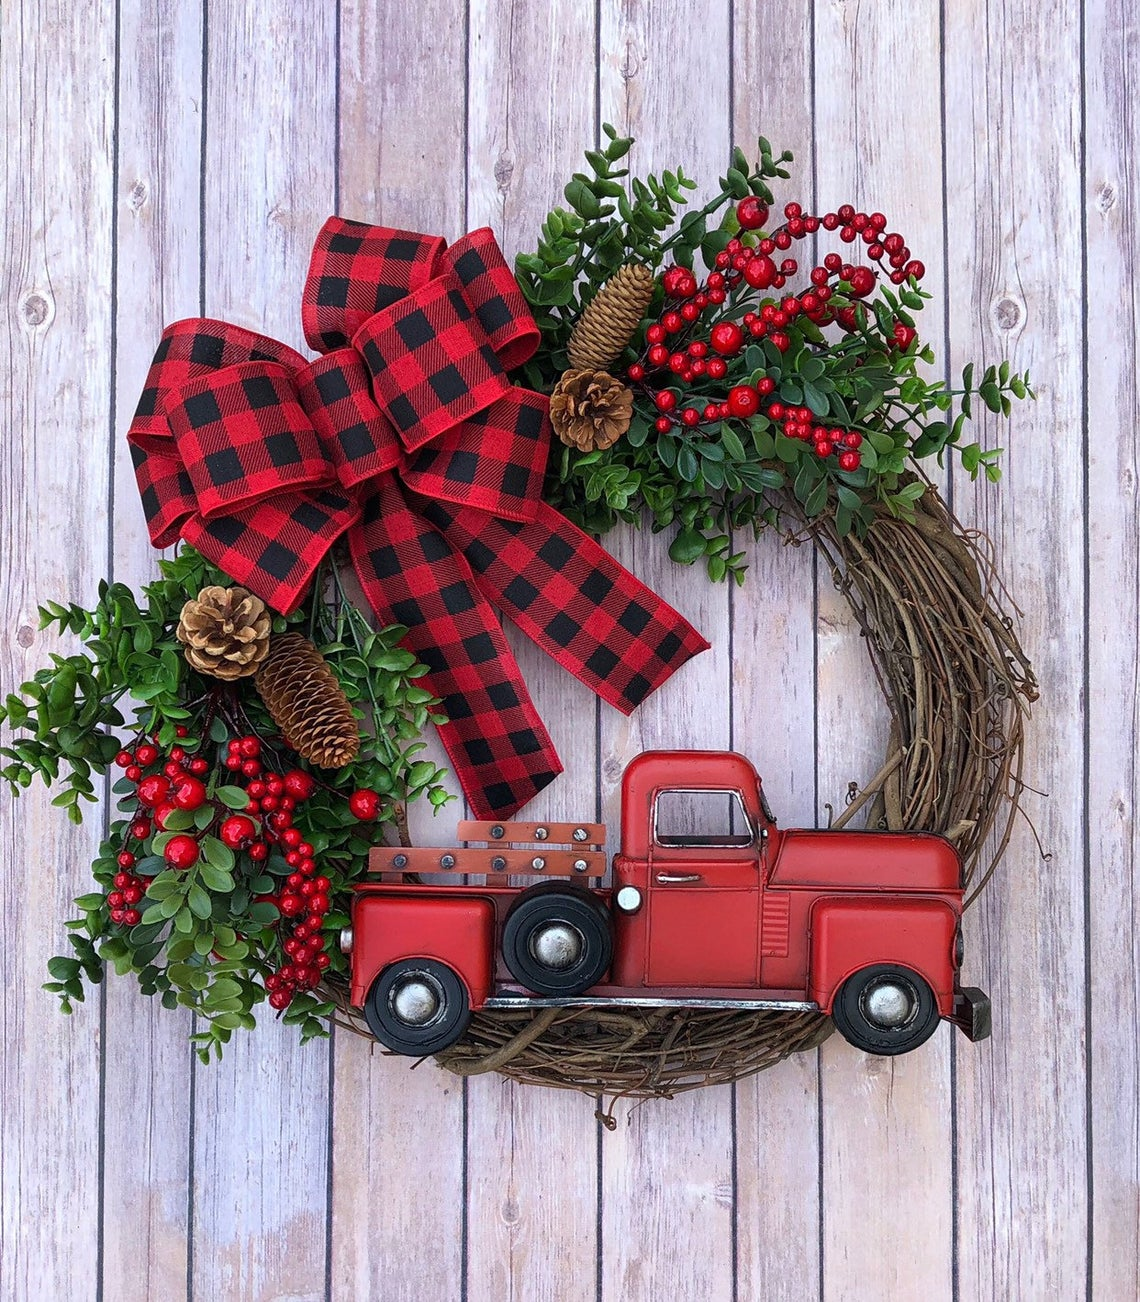 Rustic Farmhouse Style Christmas Wreath Ideas For The Front Door Unique Styles Decorating Ideas And Accessories For The Home Creative Ideas For Every Room